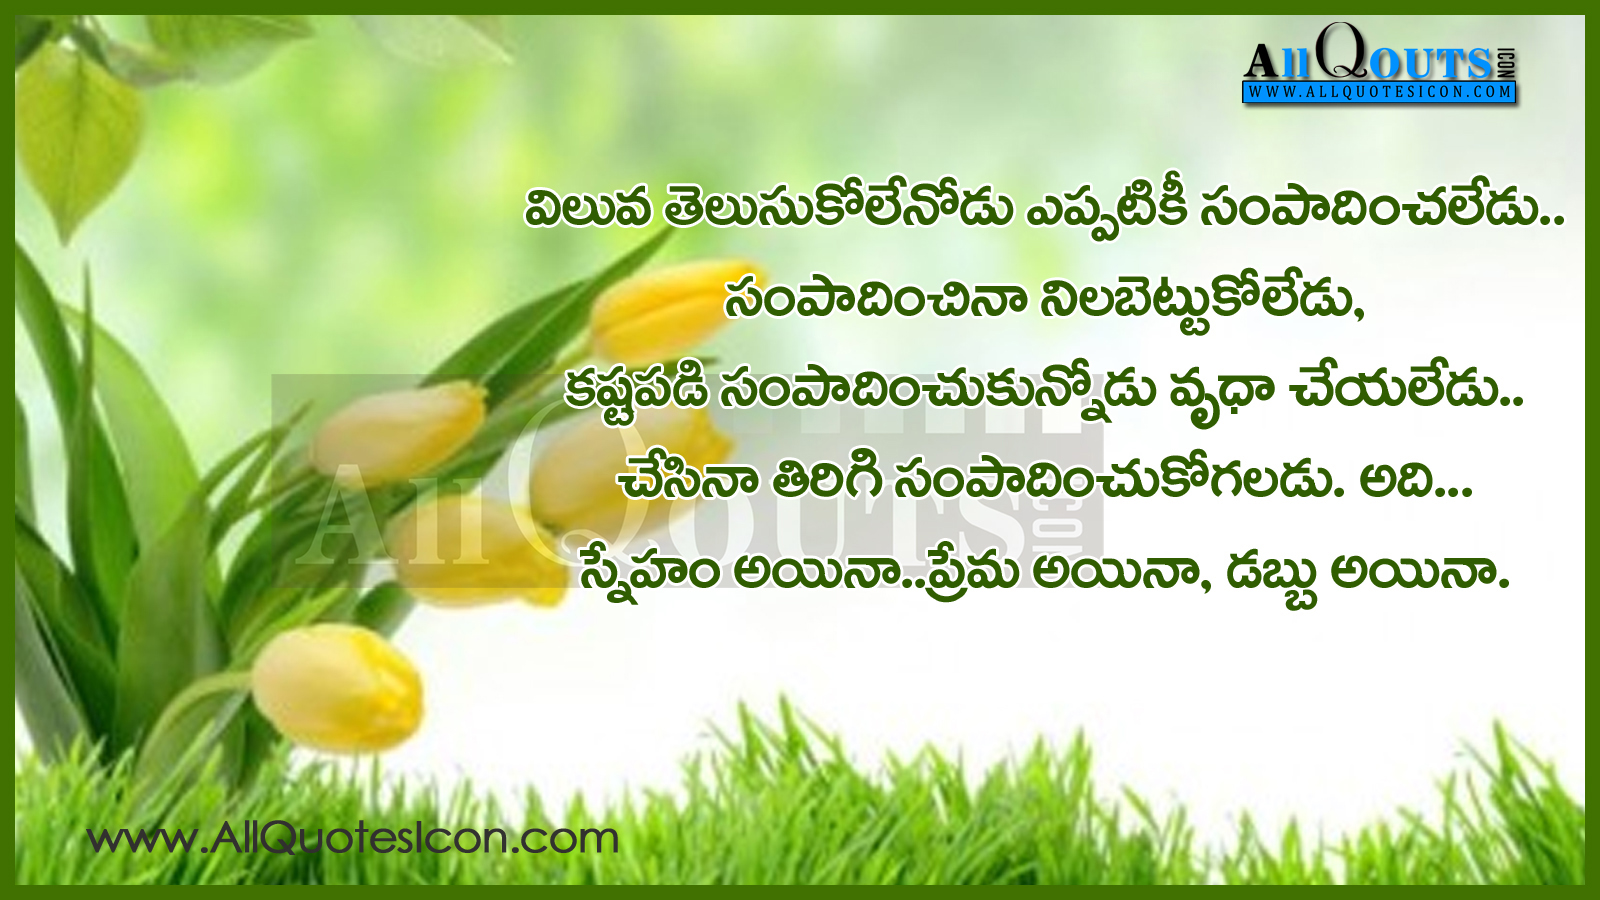 best life inspirational quotes and wallpapers in telugu